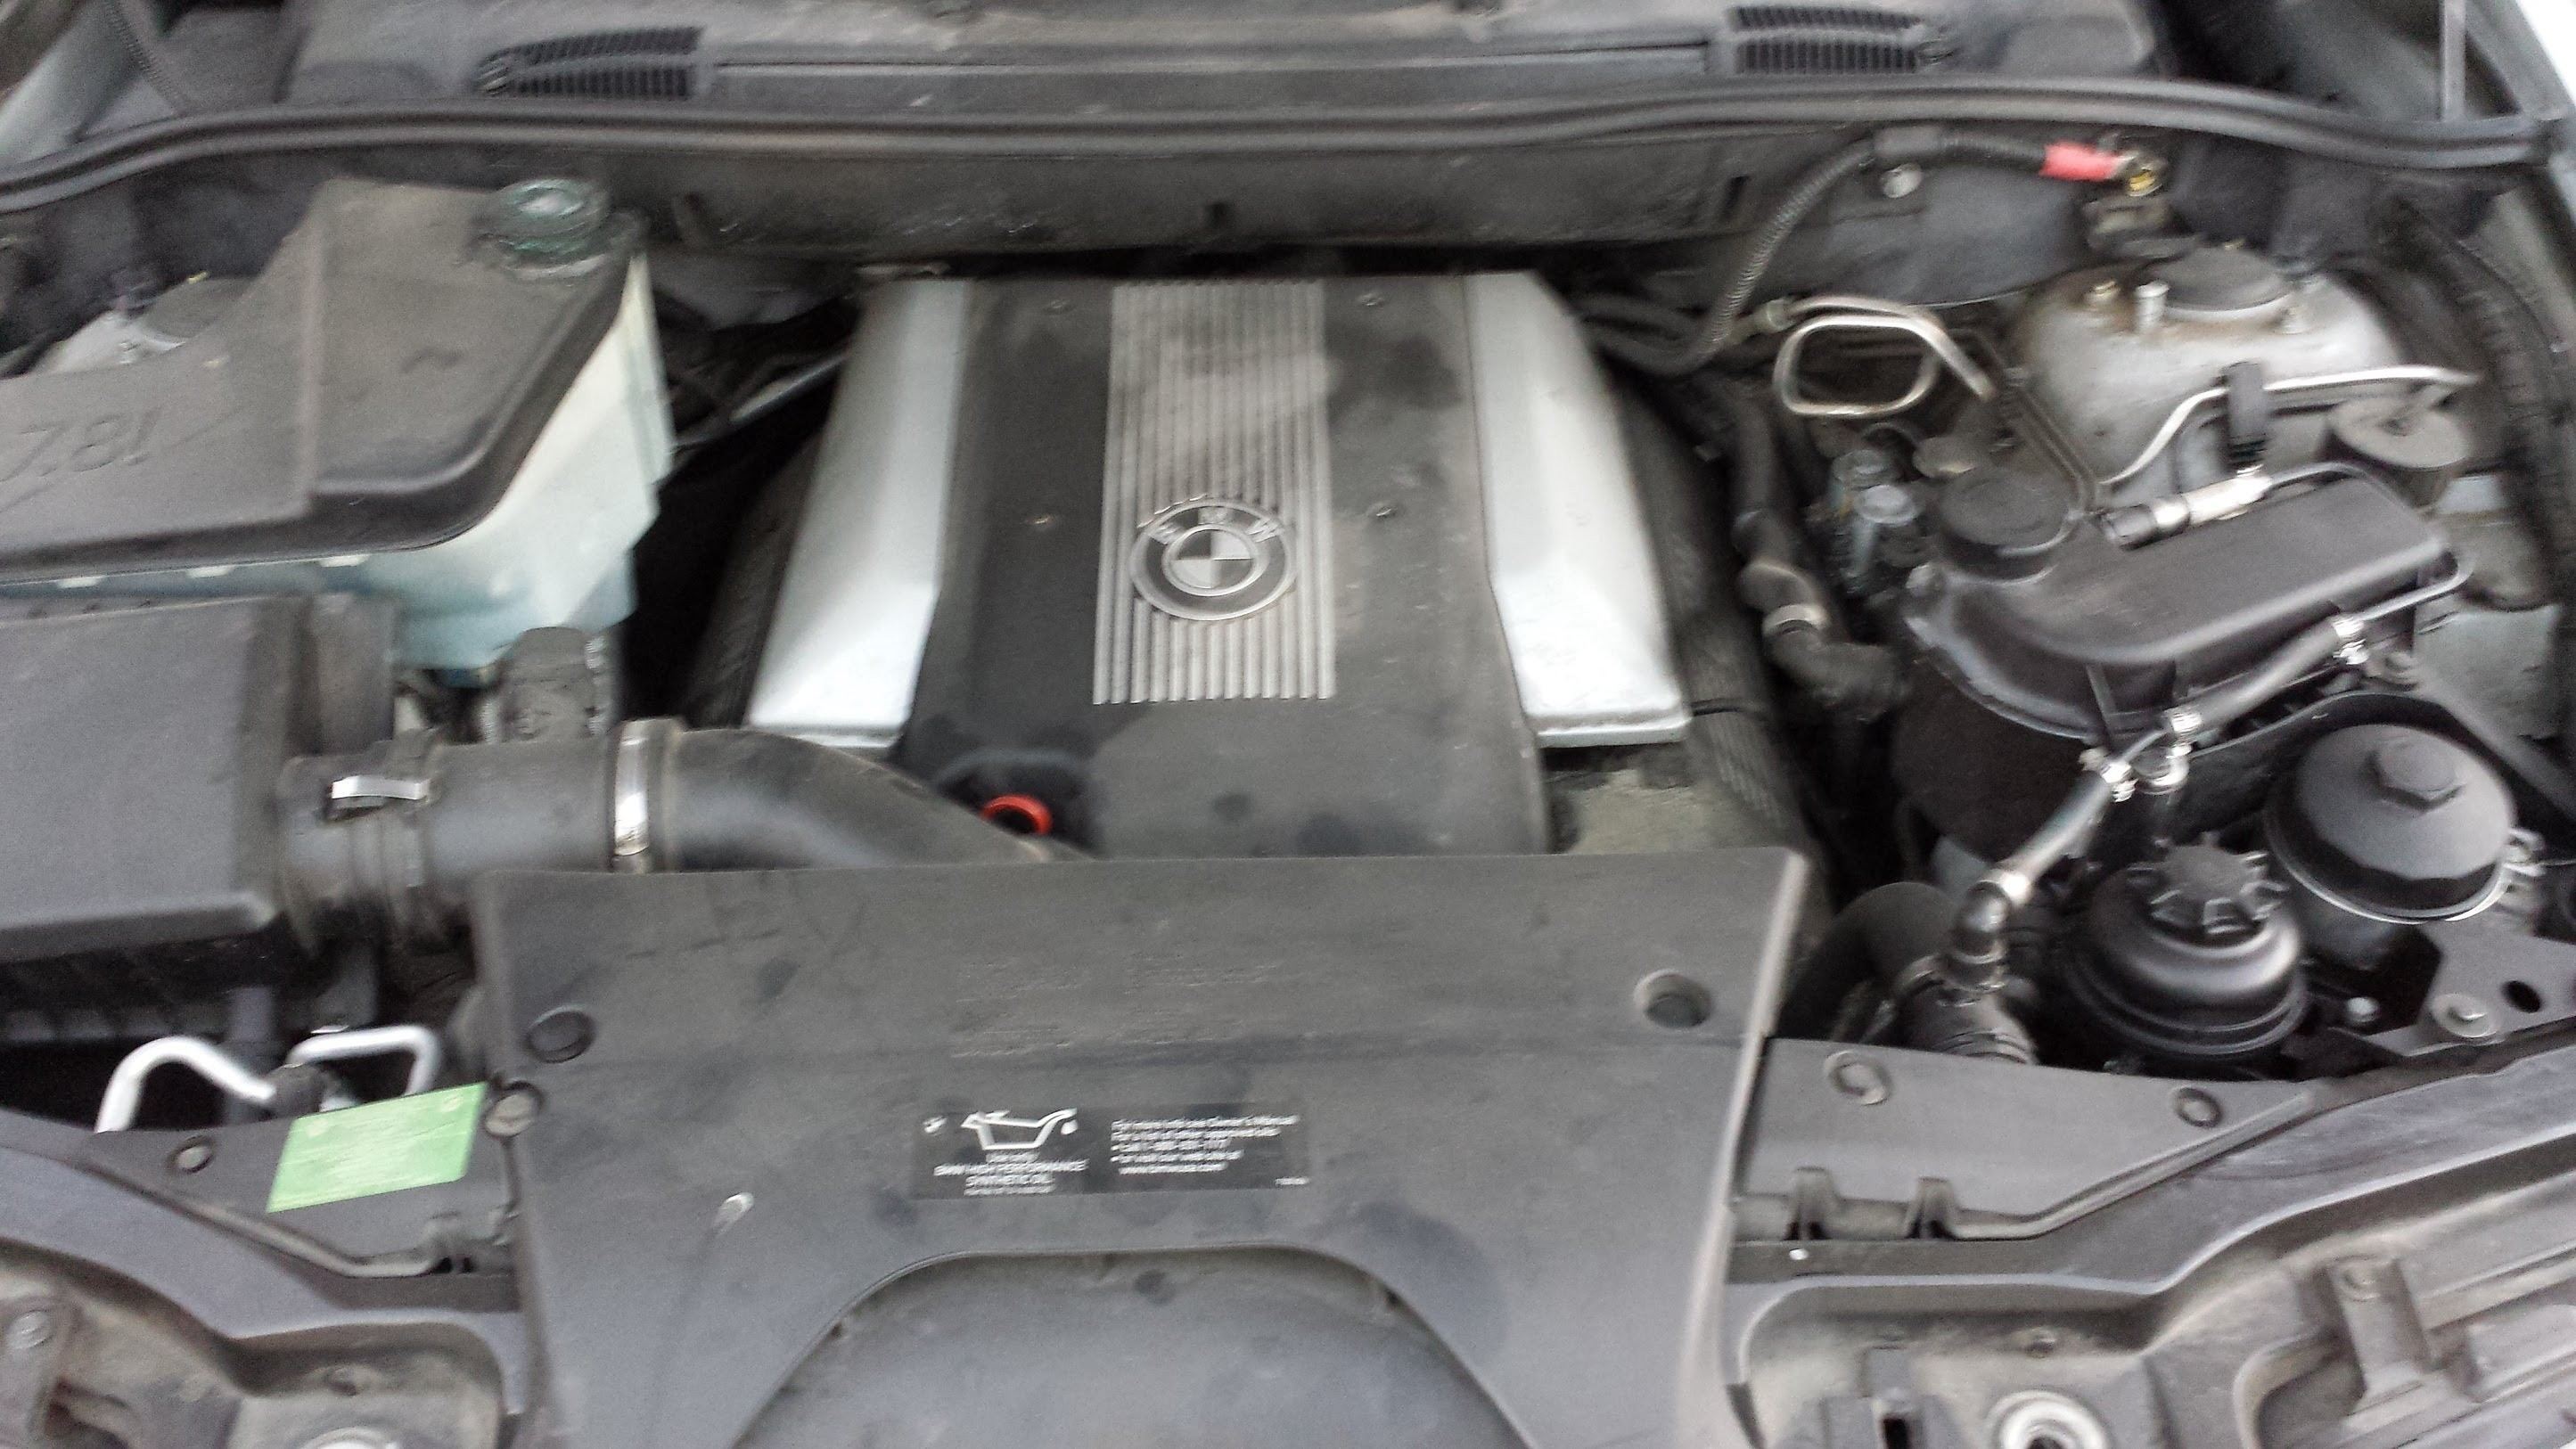 2005 Bmw X5 Engine Diagram Bmw E53 X5 4 4 Vanos Engine Diagram Of 2005 Bmw X5 Engine Diagram